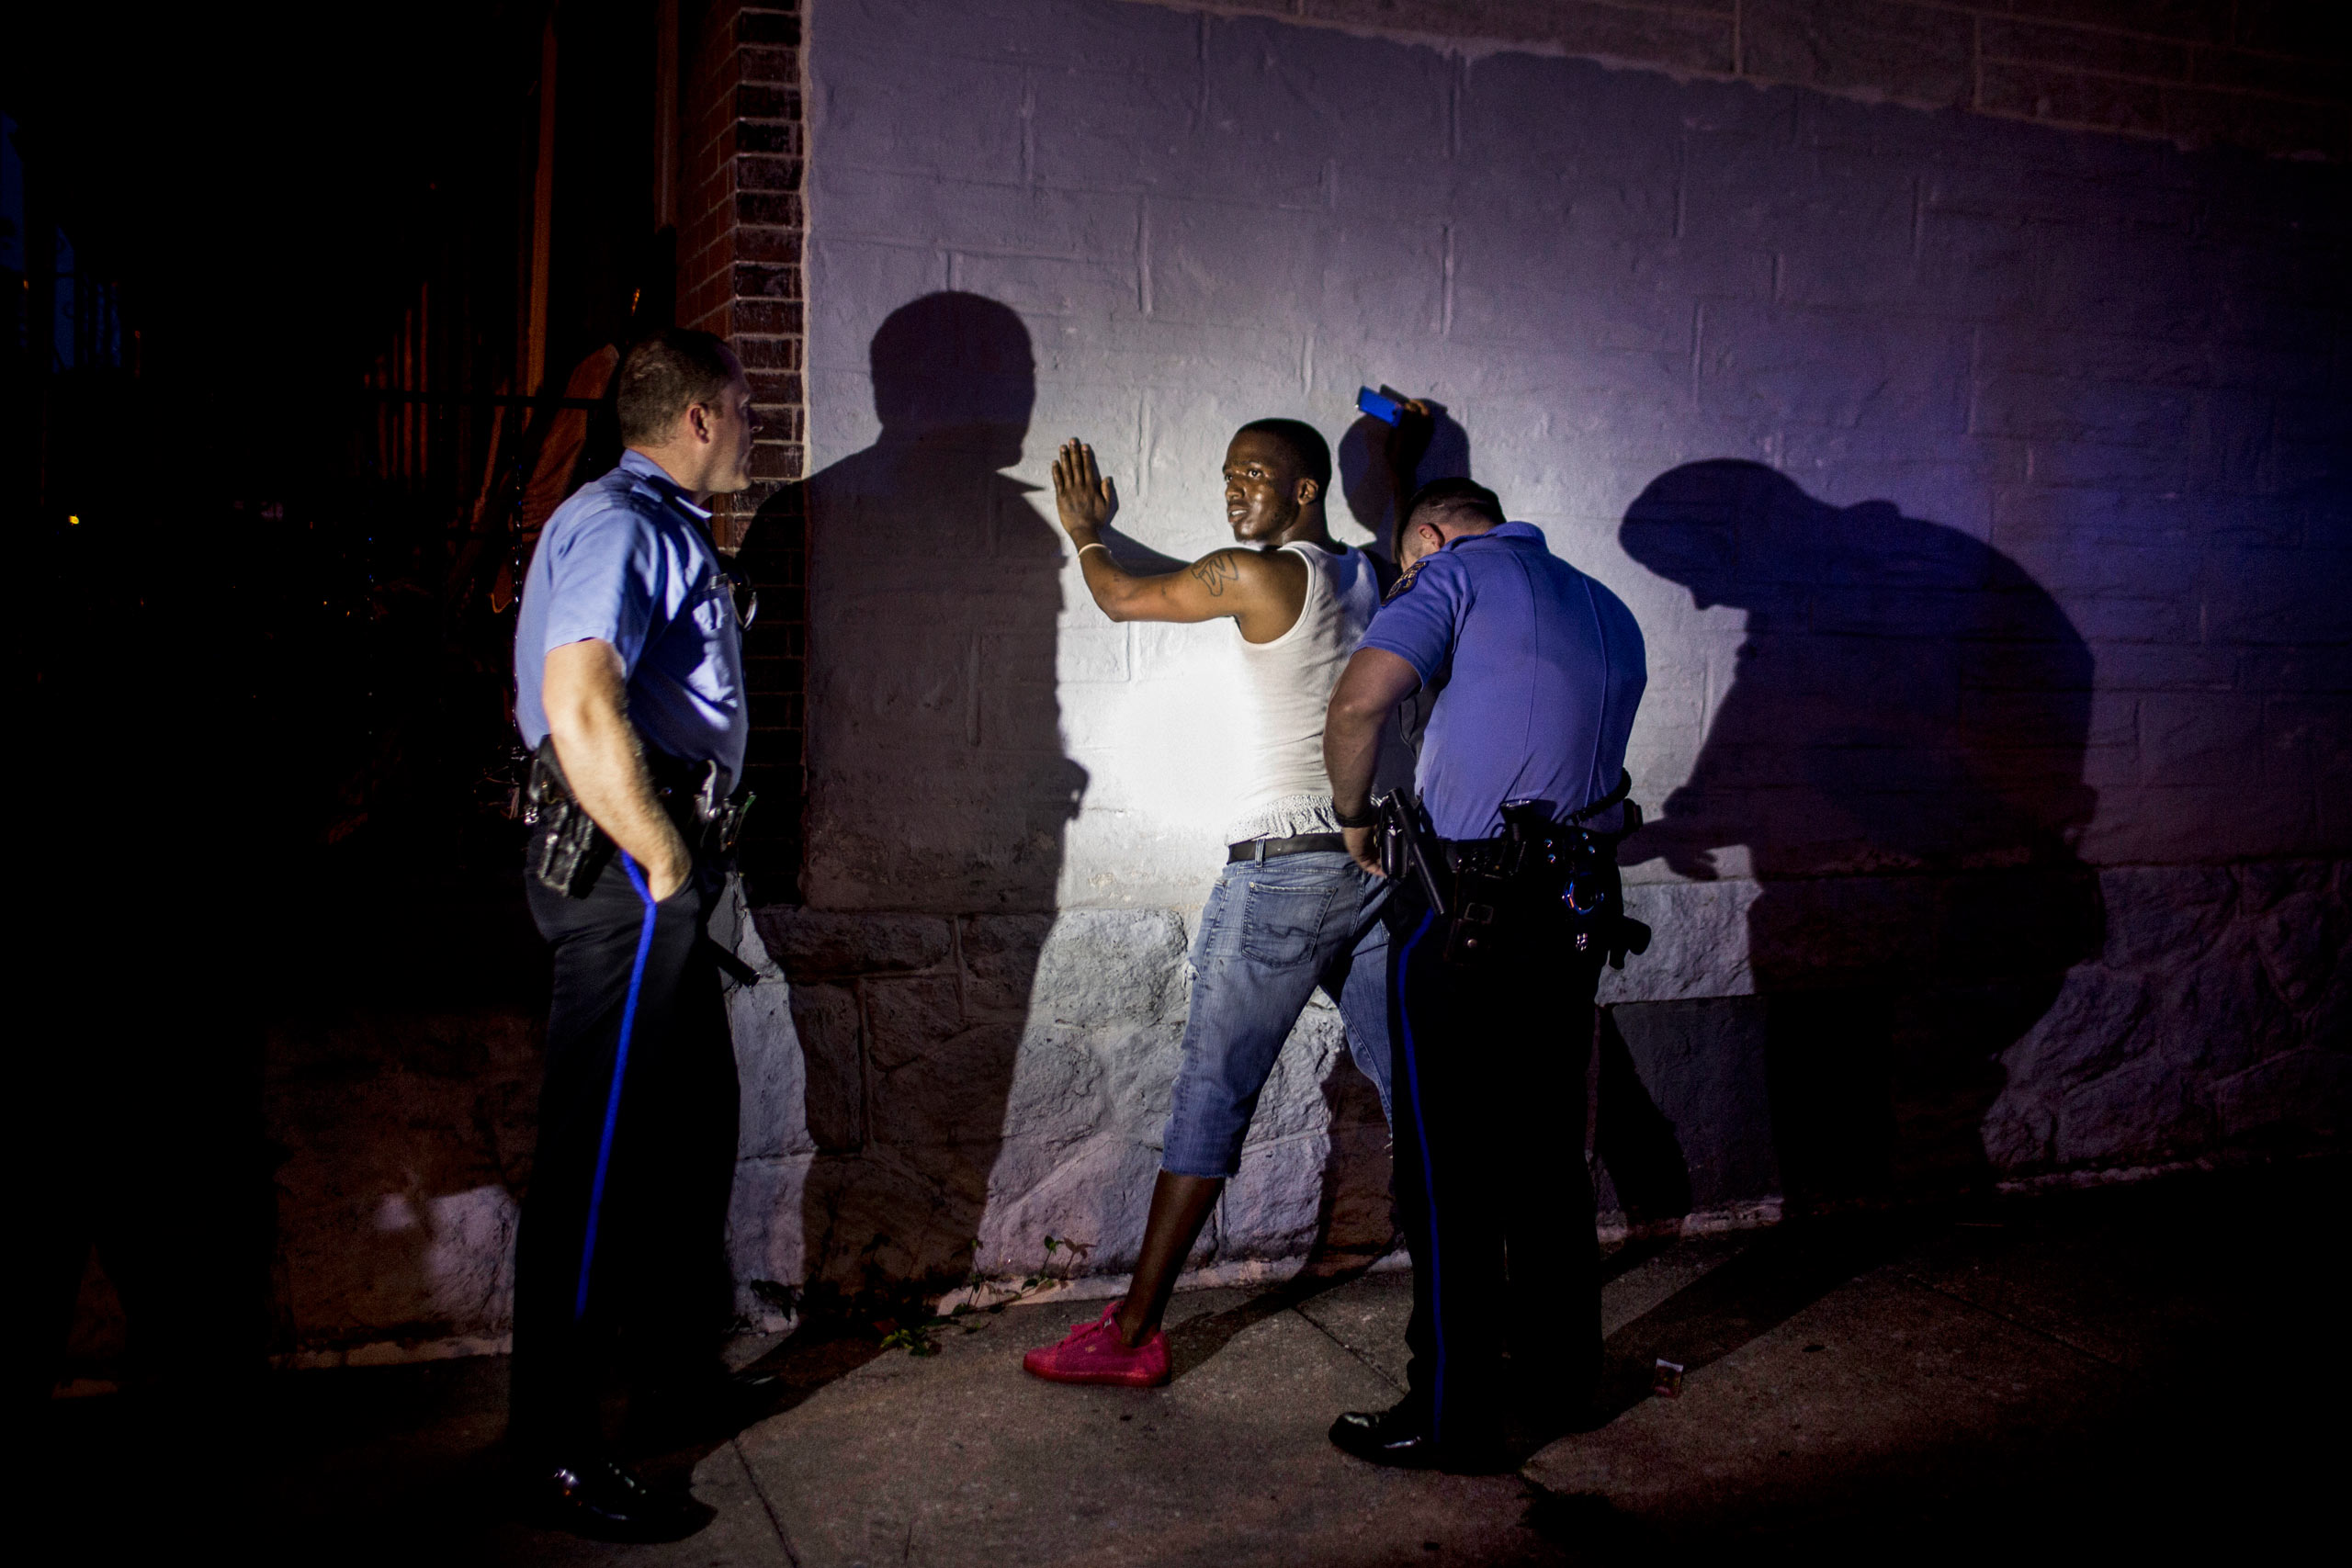 A man is arrested for allegedly violating a Protection From Abuse order, by Officer Paul Watson, right, and his partner, Adam Womer. The man's case is pending judicial proceedings. July 29, 2015. Philadelphia, Pa.                                                              Correction: The original version of this caption misidentified the police officer on the left in this photograph. He is Officer Adam Womer.